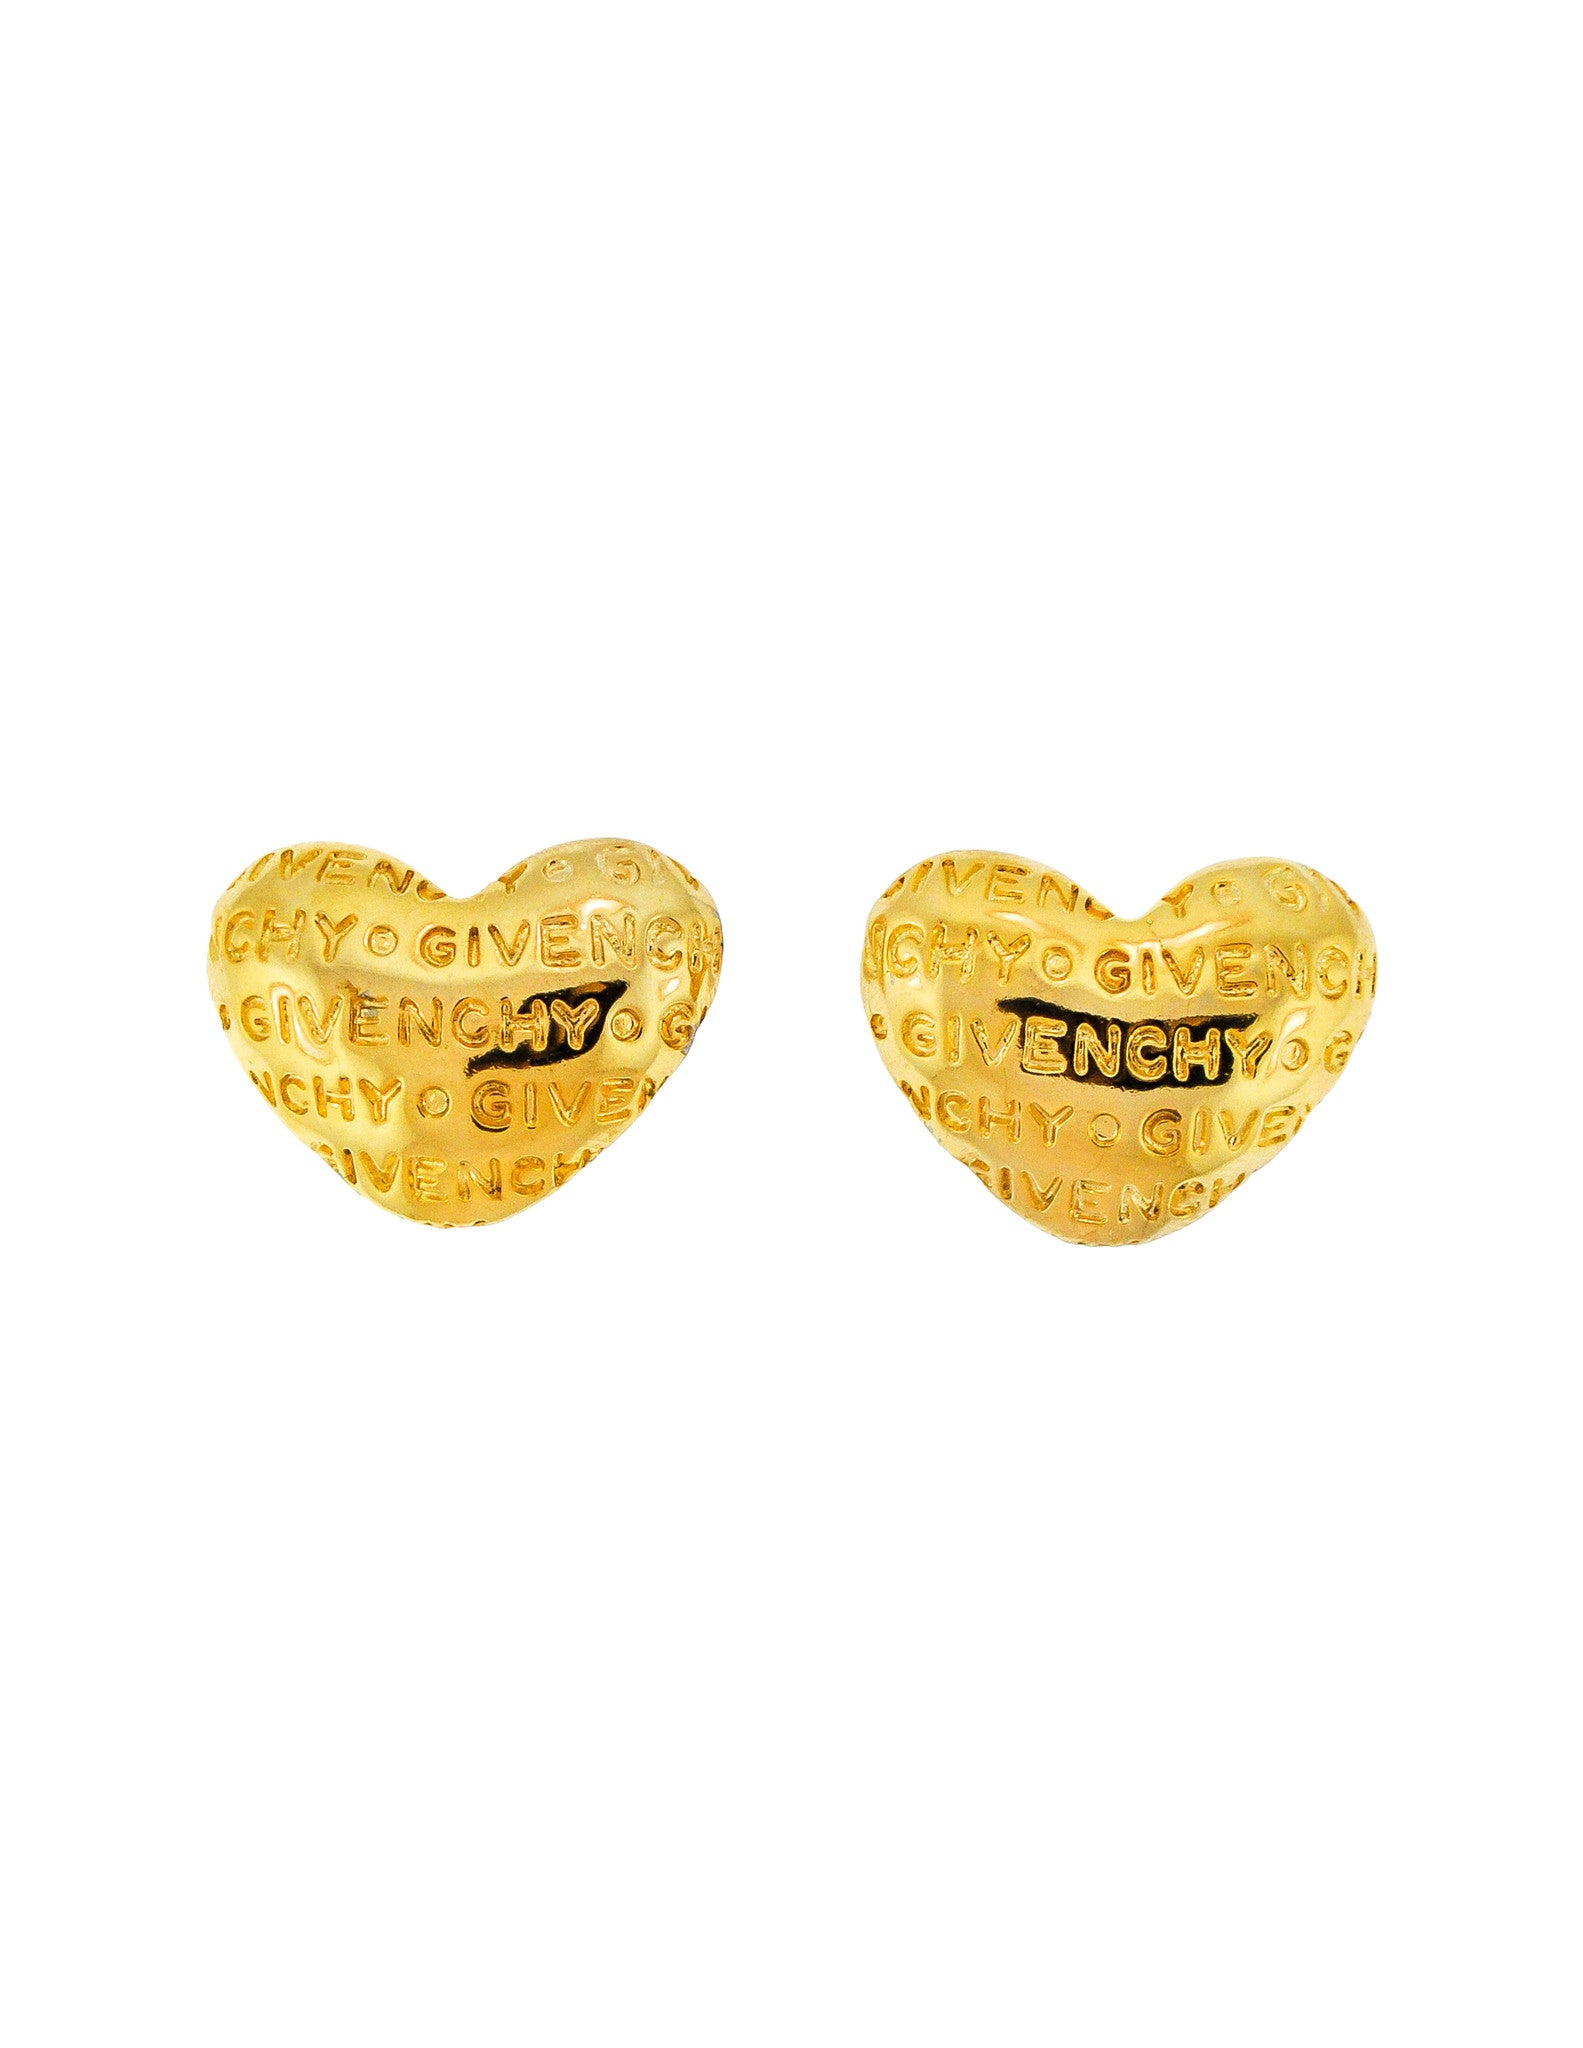 Givenchy Vintage Gold Namesake Heart Earrings - Amarcord Vintage Fashion  - 1